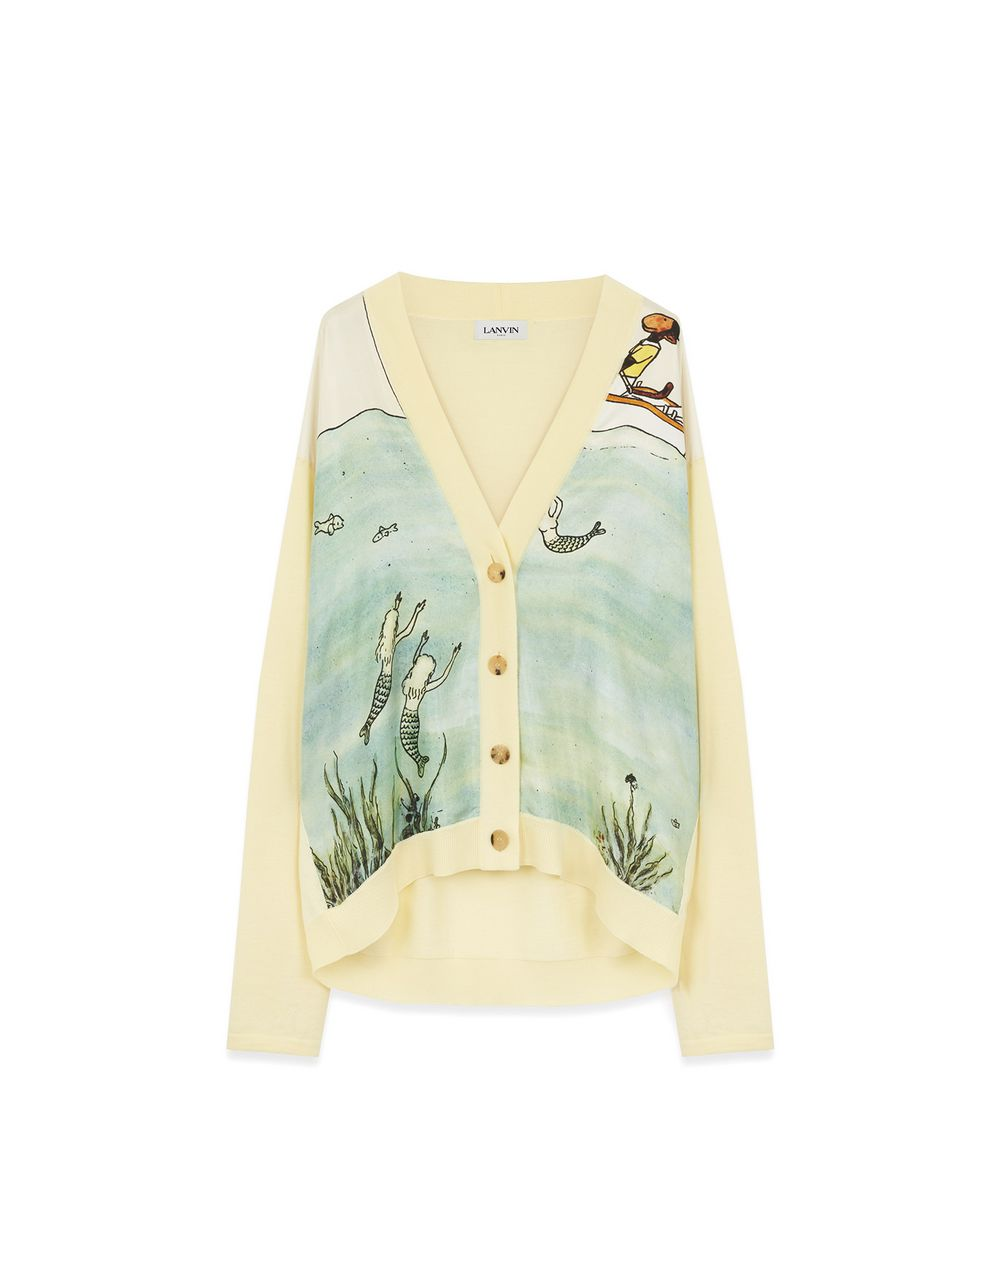 PRINTED WOOL AND SILK CARDIGAN - Lanvin